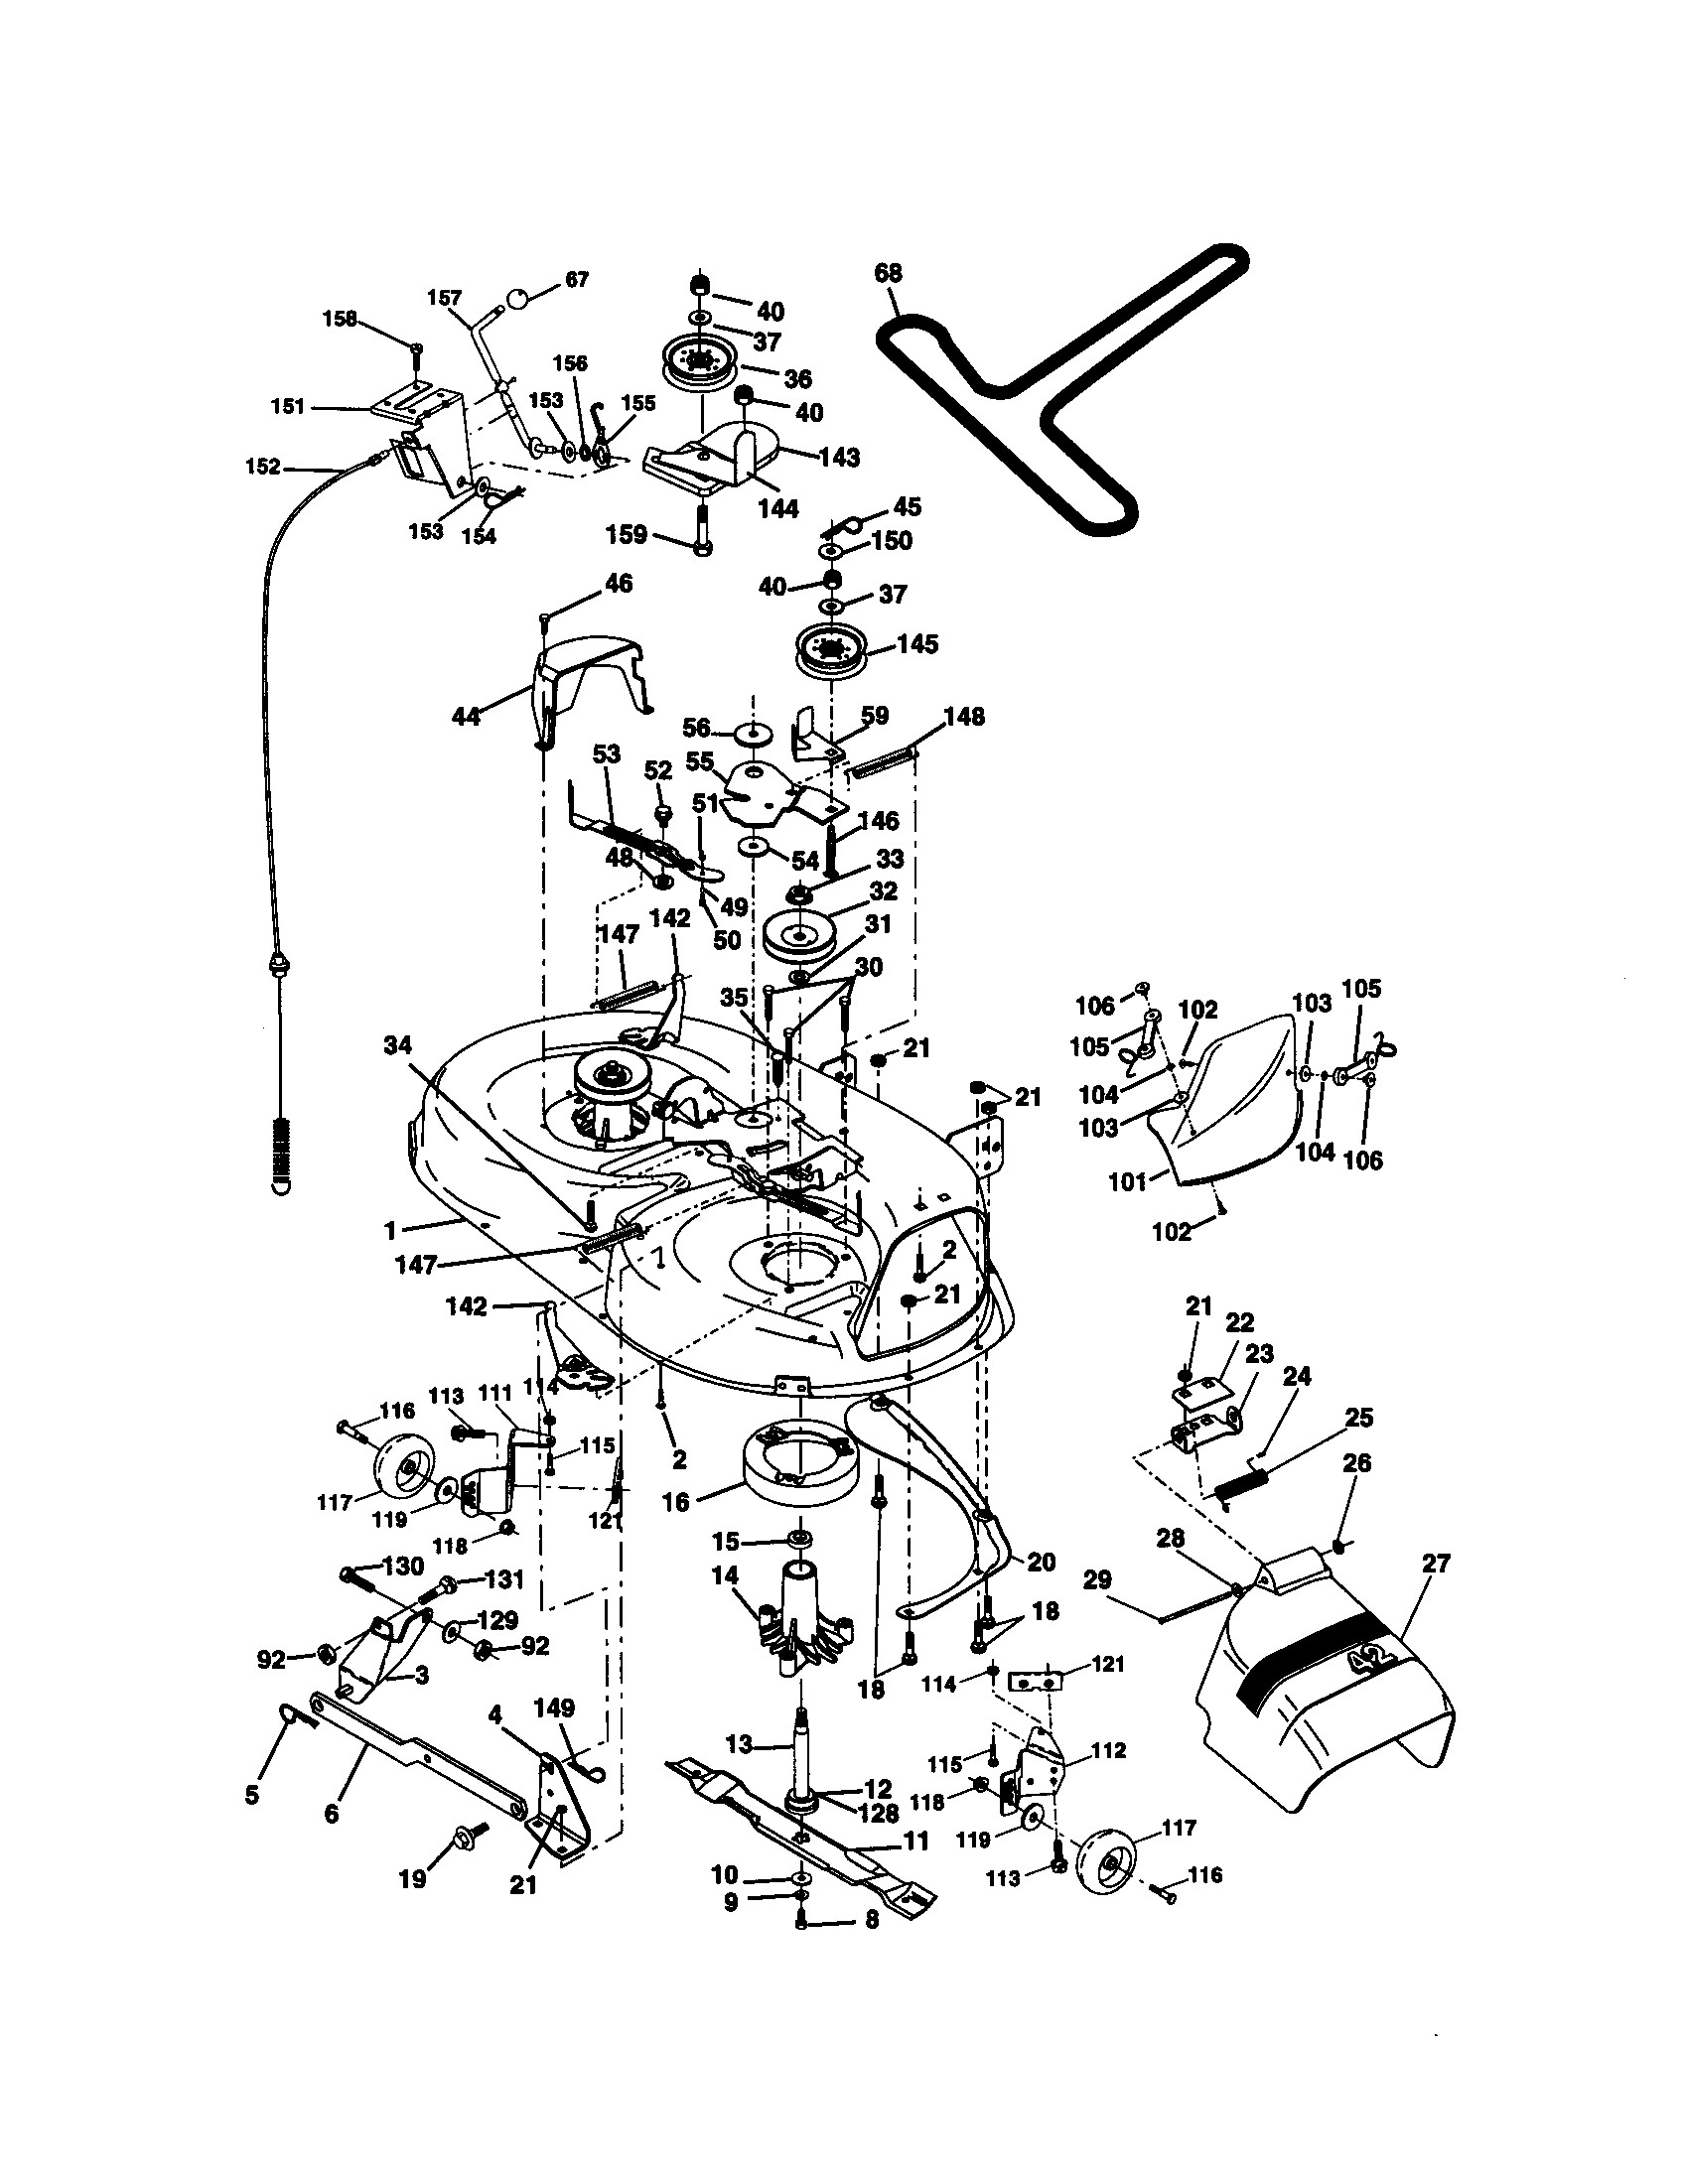 Briggs and Stratton Engine Parts Diagram Craftsman Model Lawn Tractor Genuine Parts Of Briggs and Stratton Engine Parts Diagram